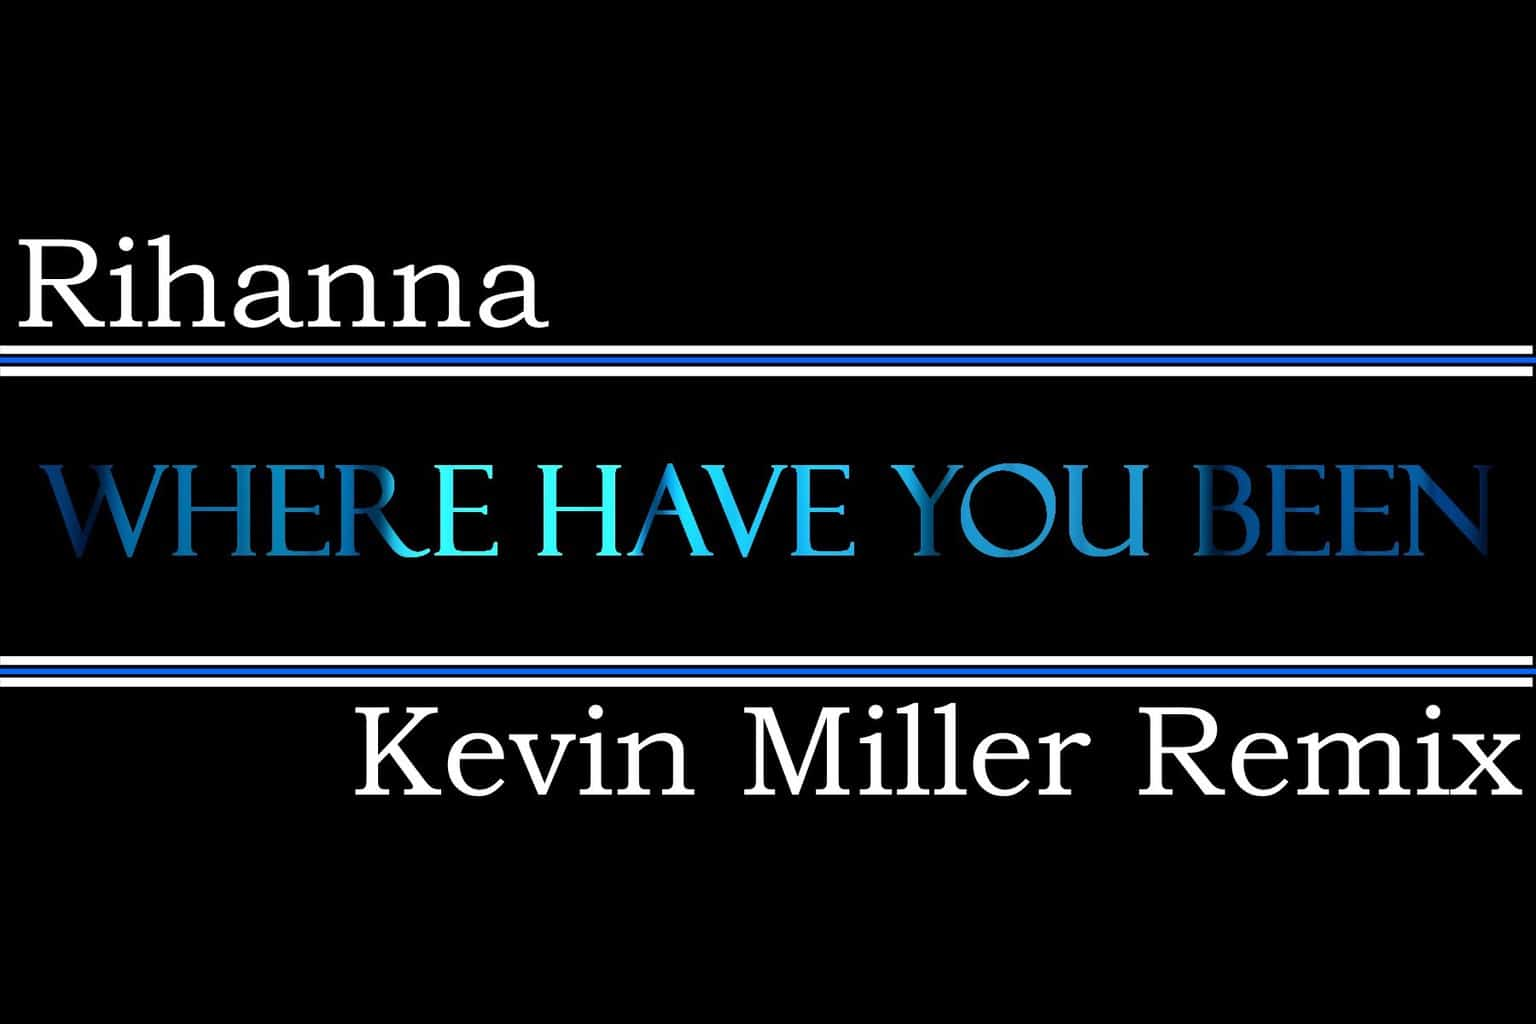 Rihanna - Where Have You Been (Kevin Miller Remix)